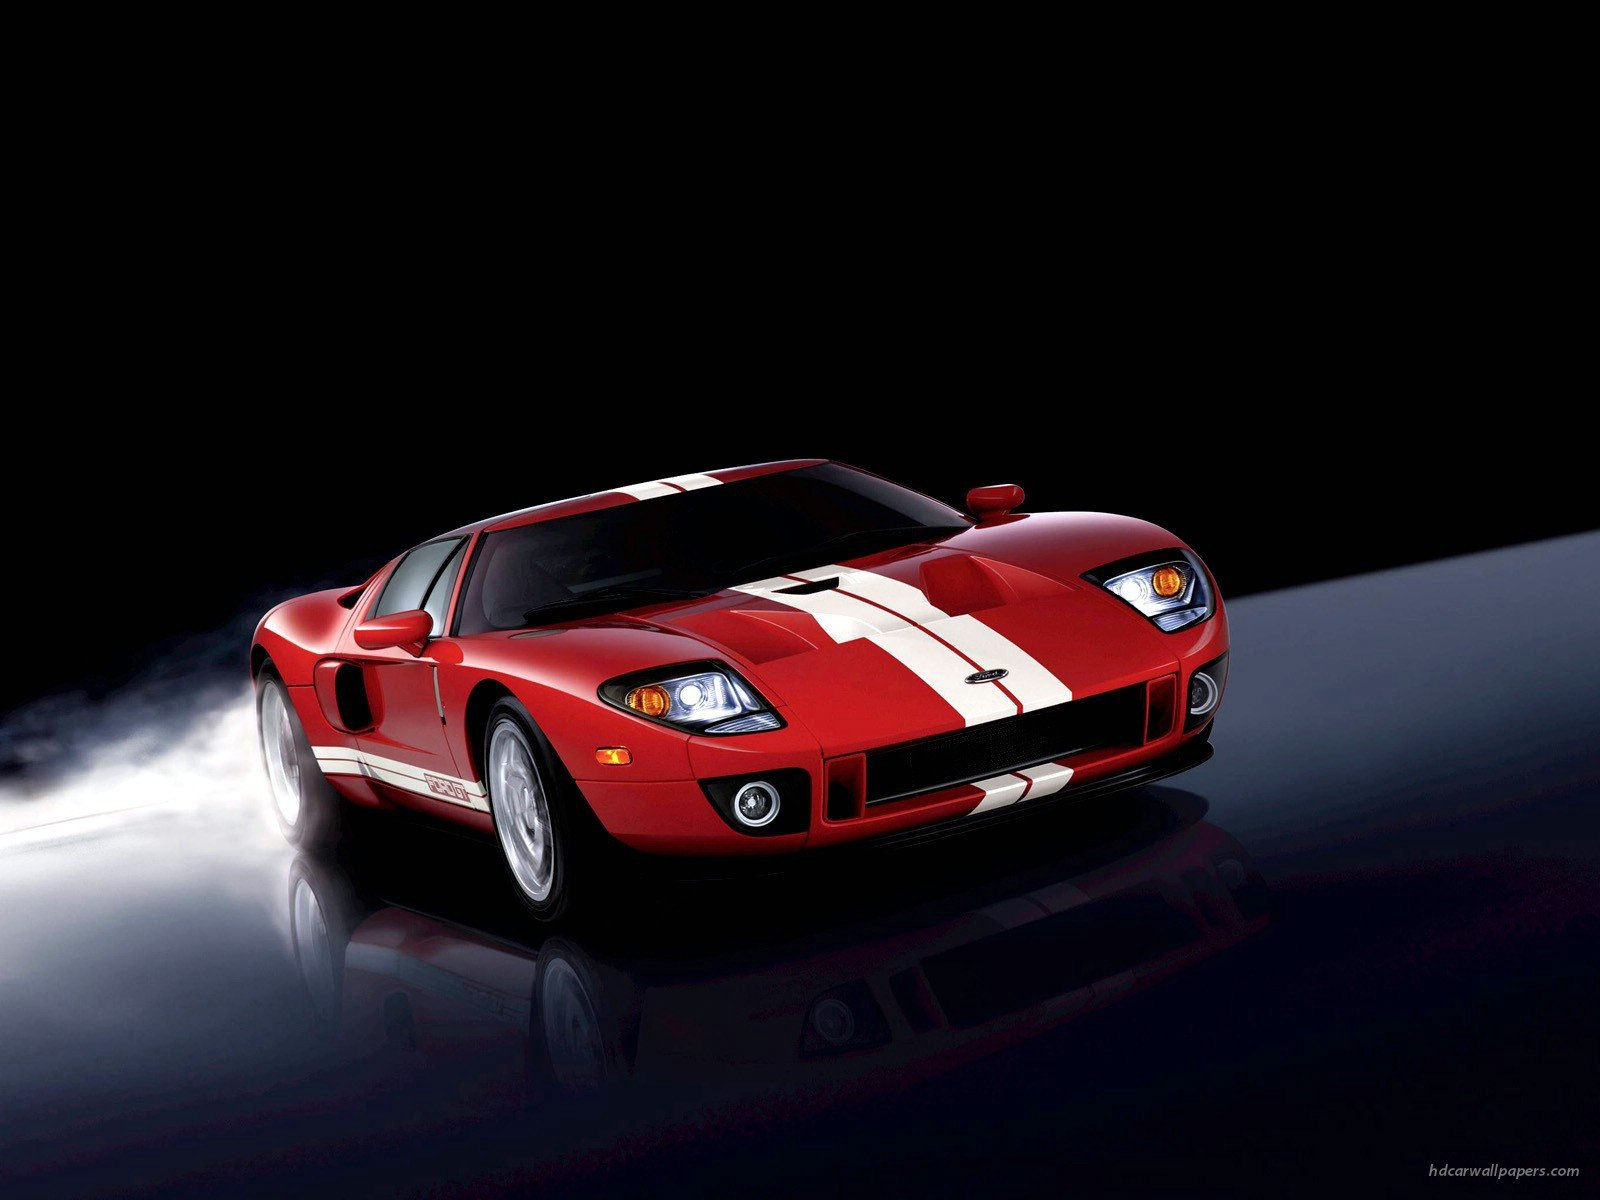 Ford GT Wallpaper HD on WallpaperSafari